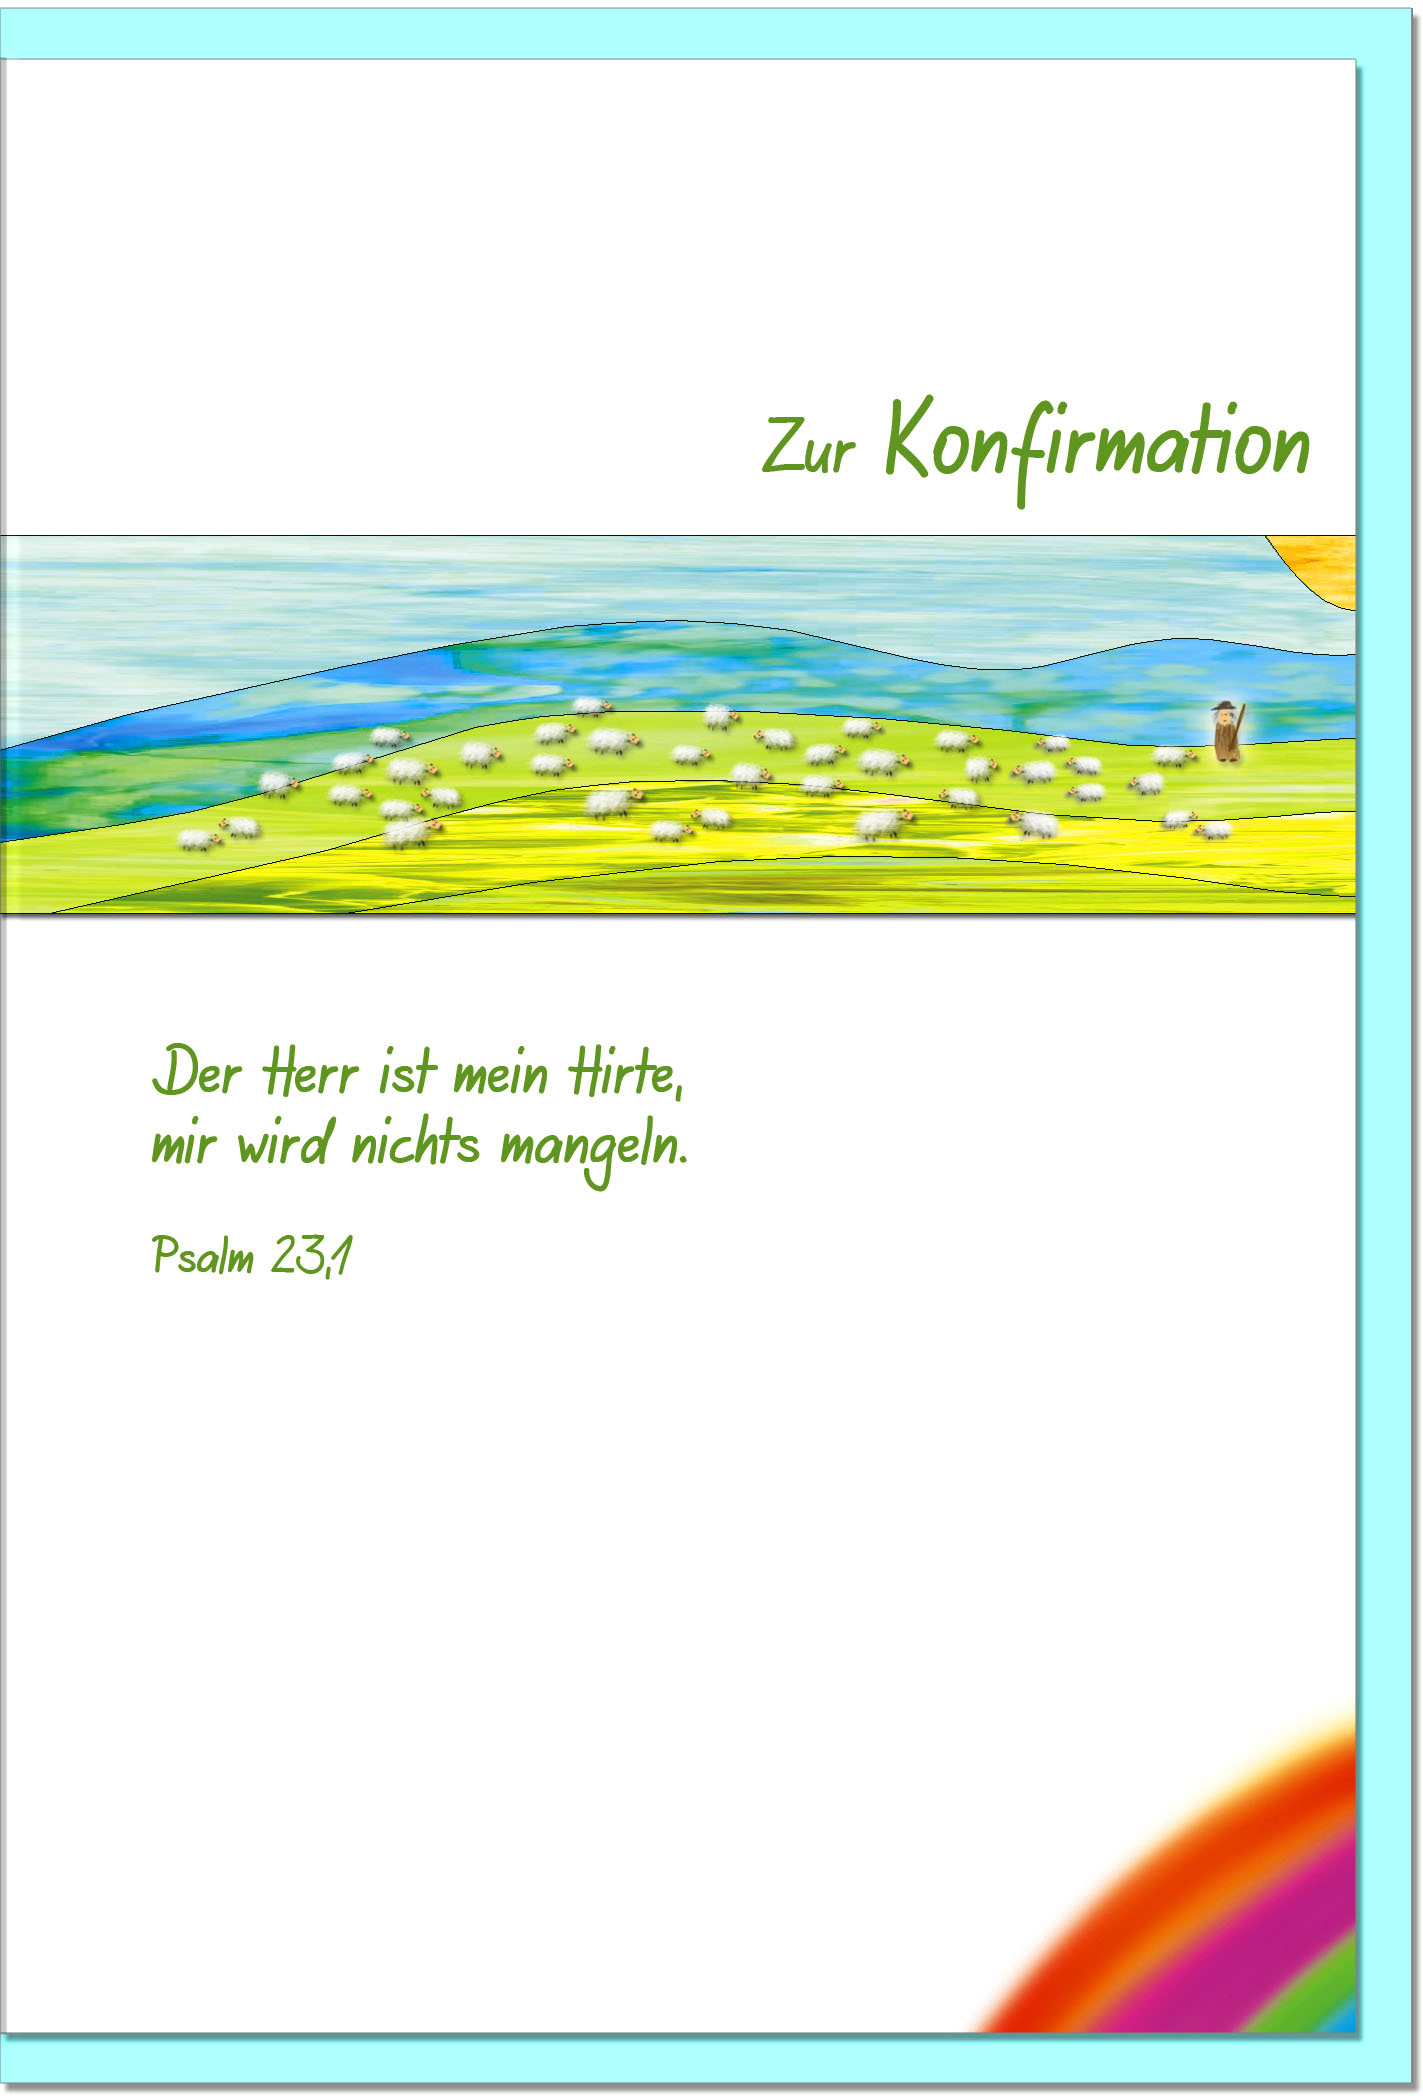 Konfirmationskarten / Grußkarten /Konfirmation Hirte